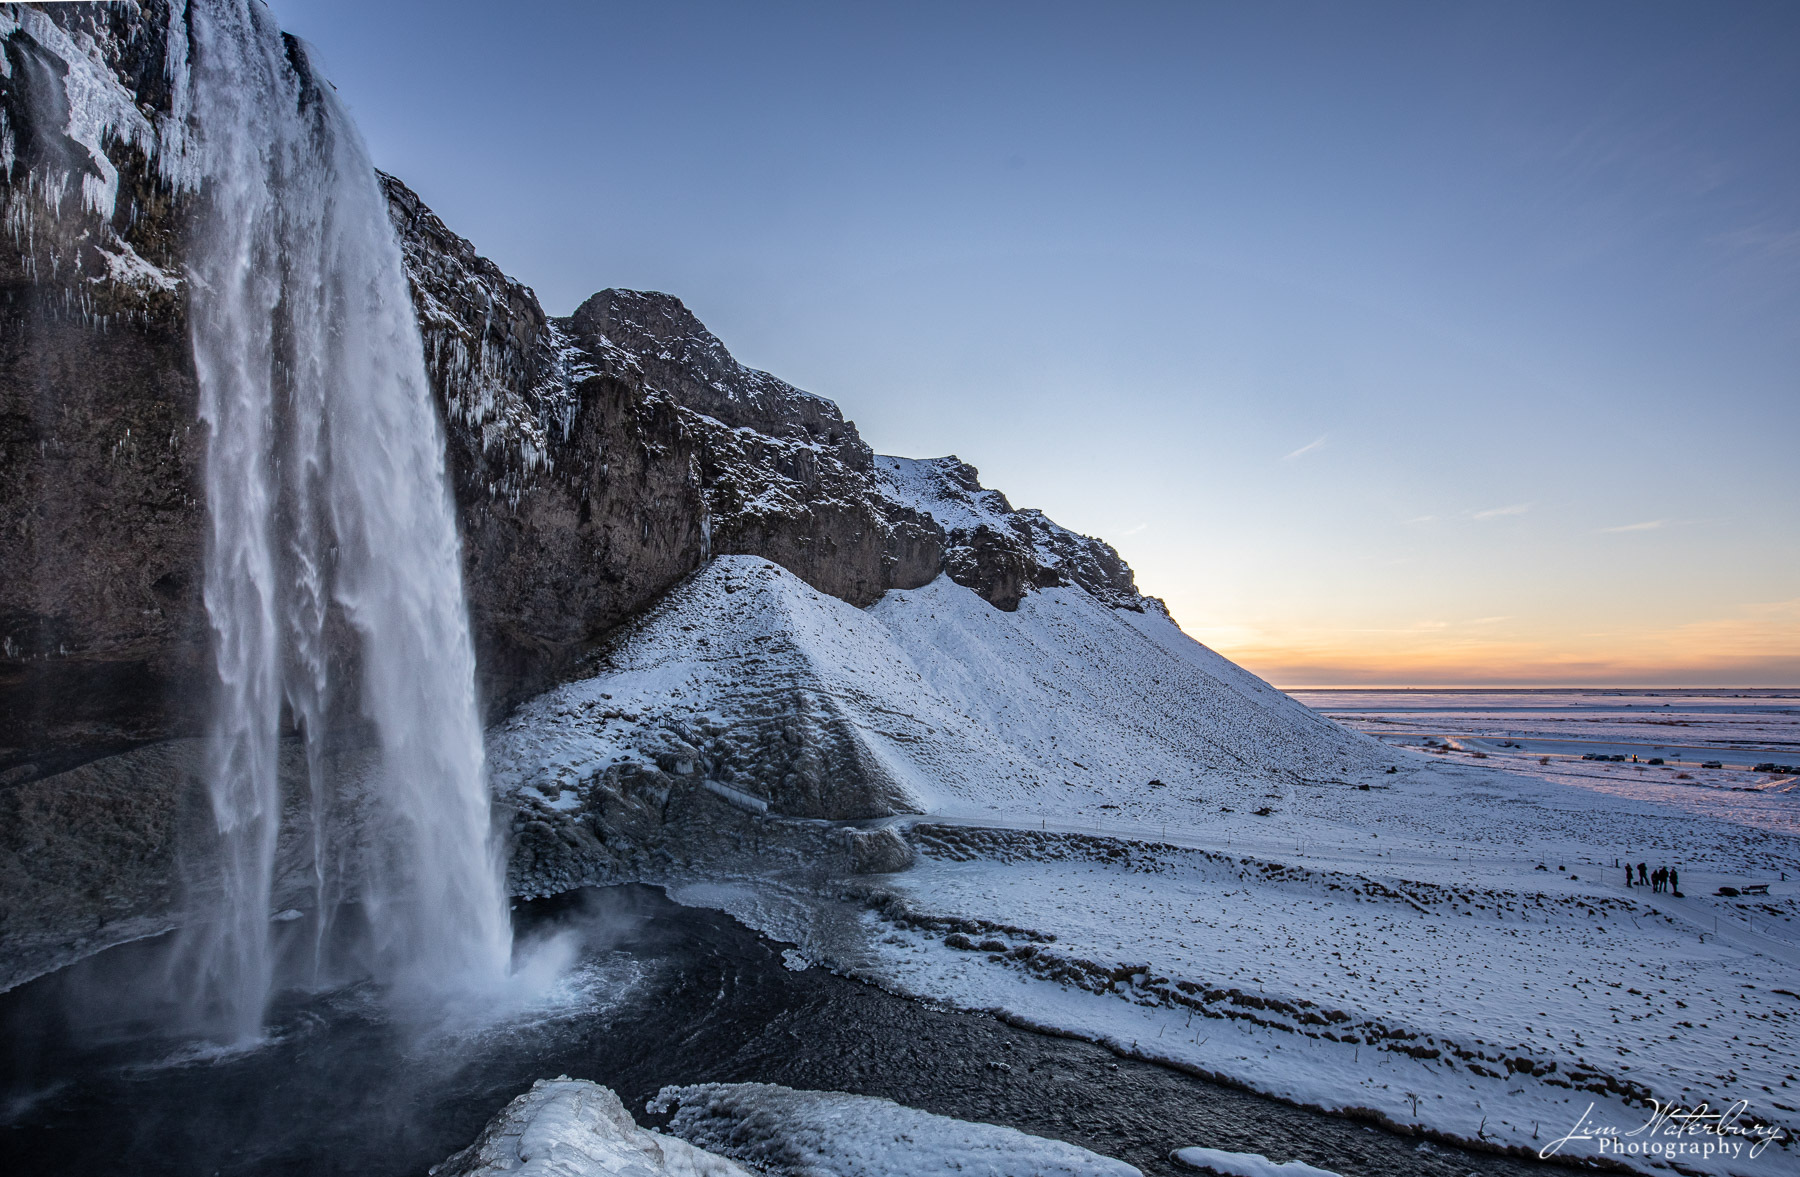 Seljalandsfoss waterfall accents a snow-covered winter landscape in Southern Iceland at sunset.